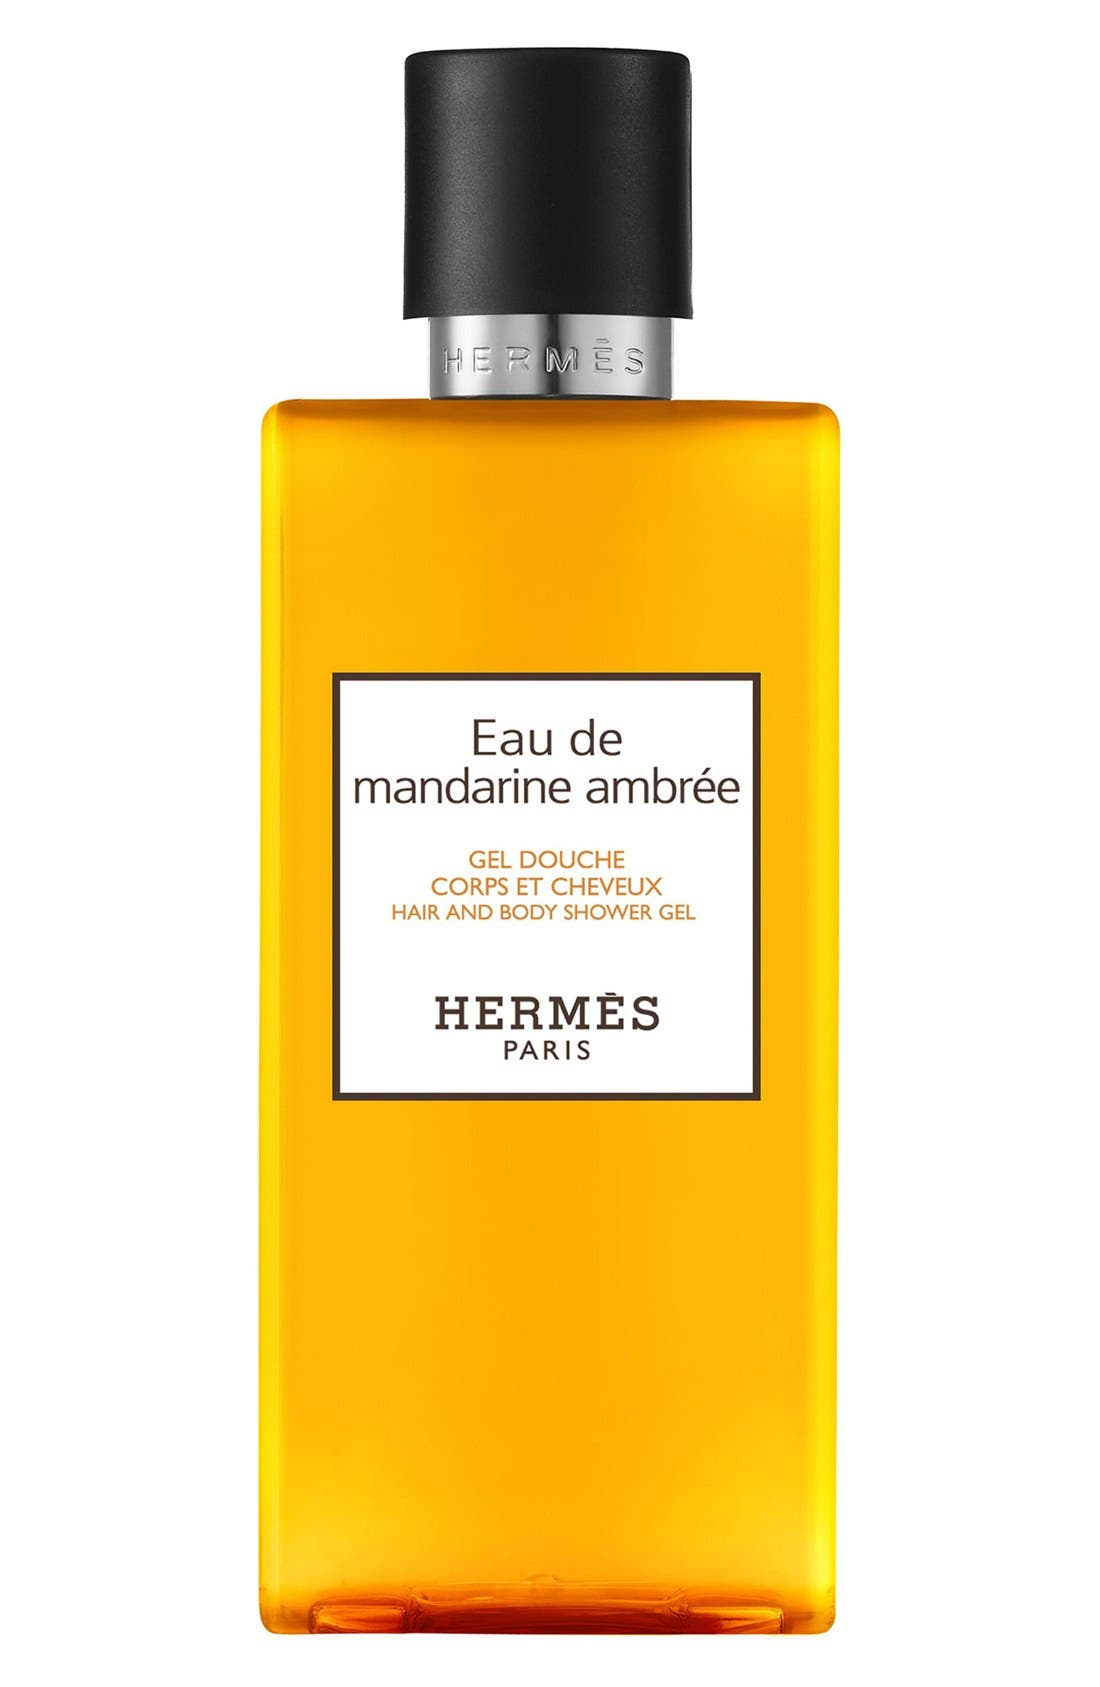 Hermès Eau de Mandarine Ambrée - Hair and body shower gel